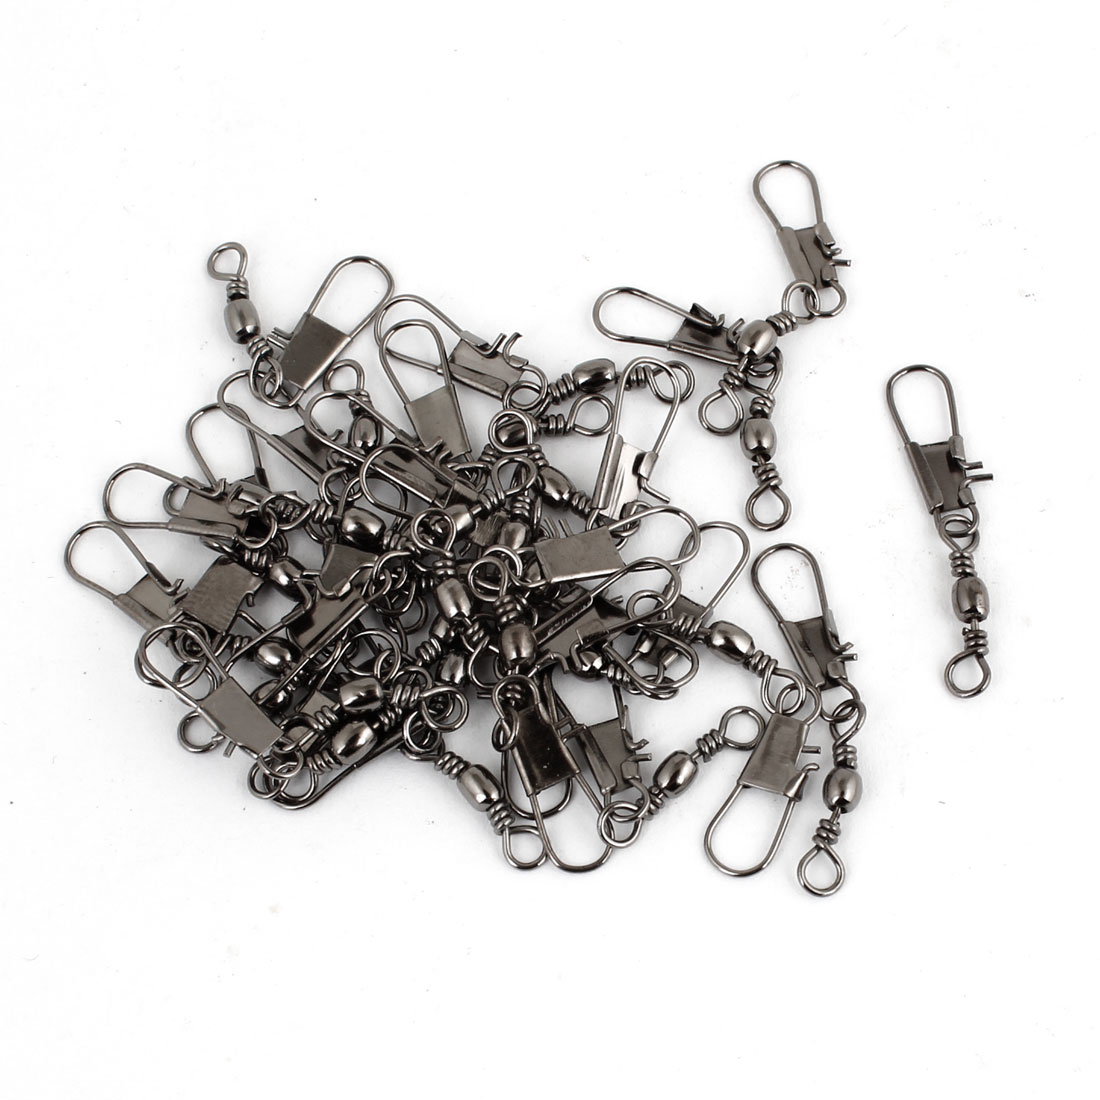 27 x 4mm Gray Fishing Rolling Barrel Swivel Interlock Clips Connector 30pcs